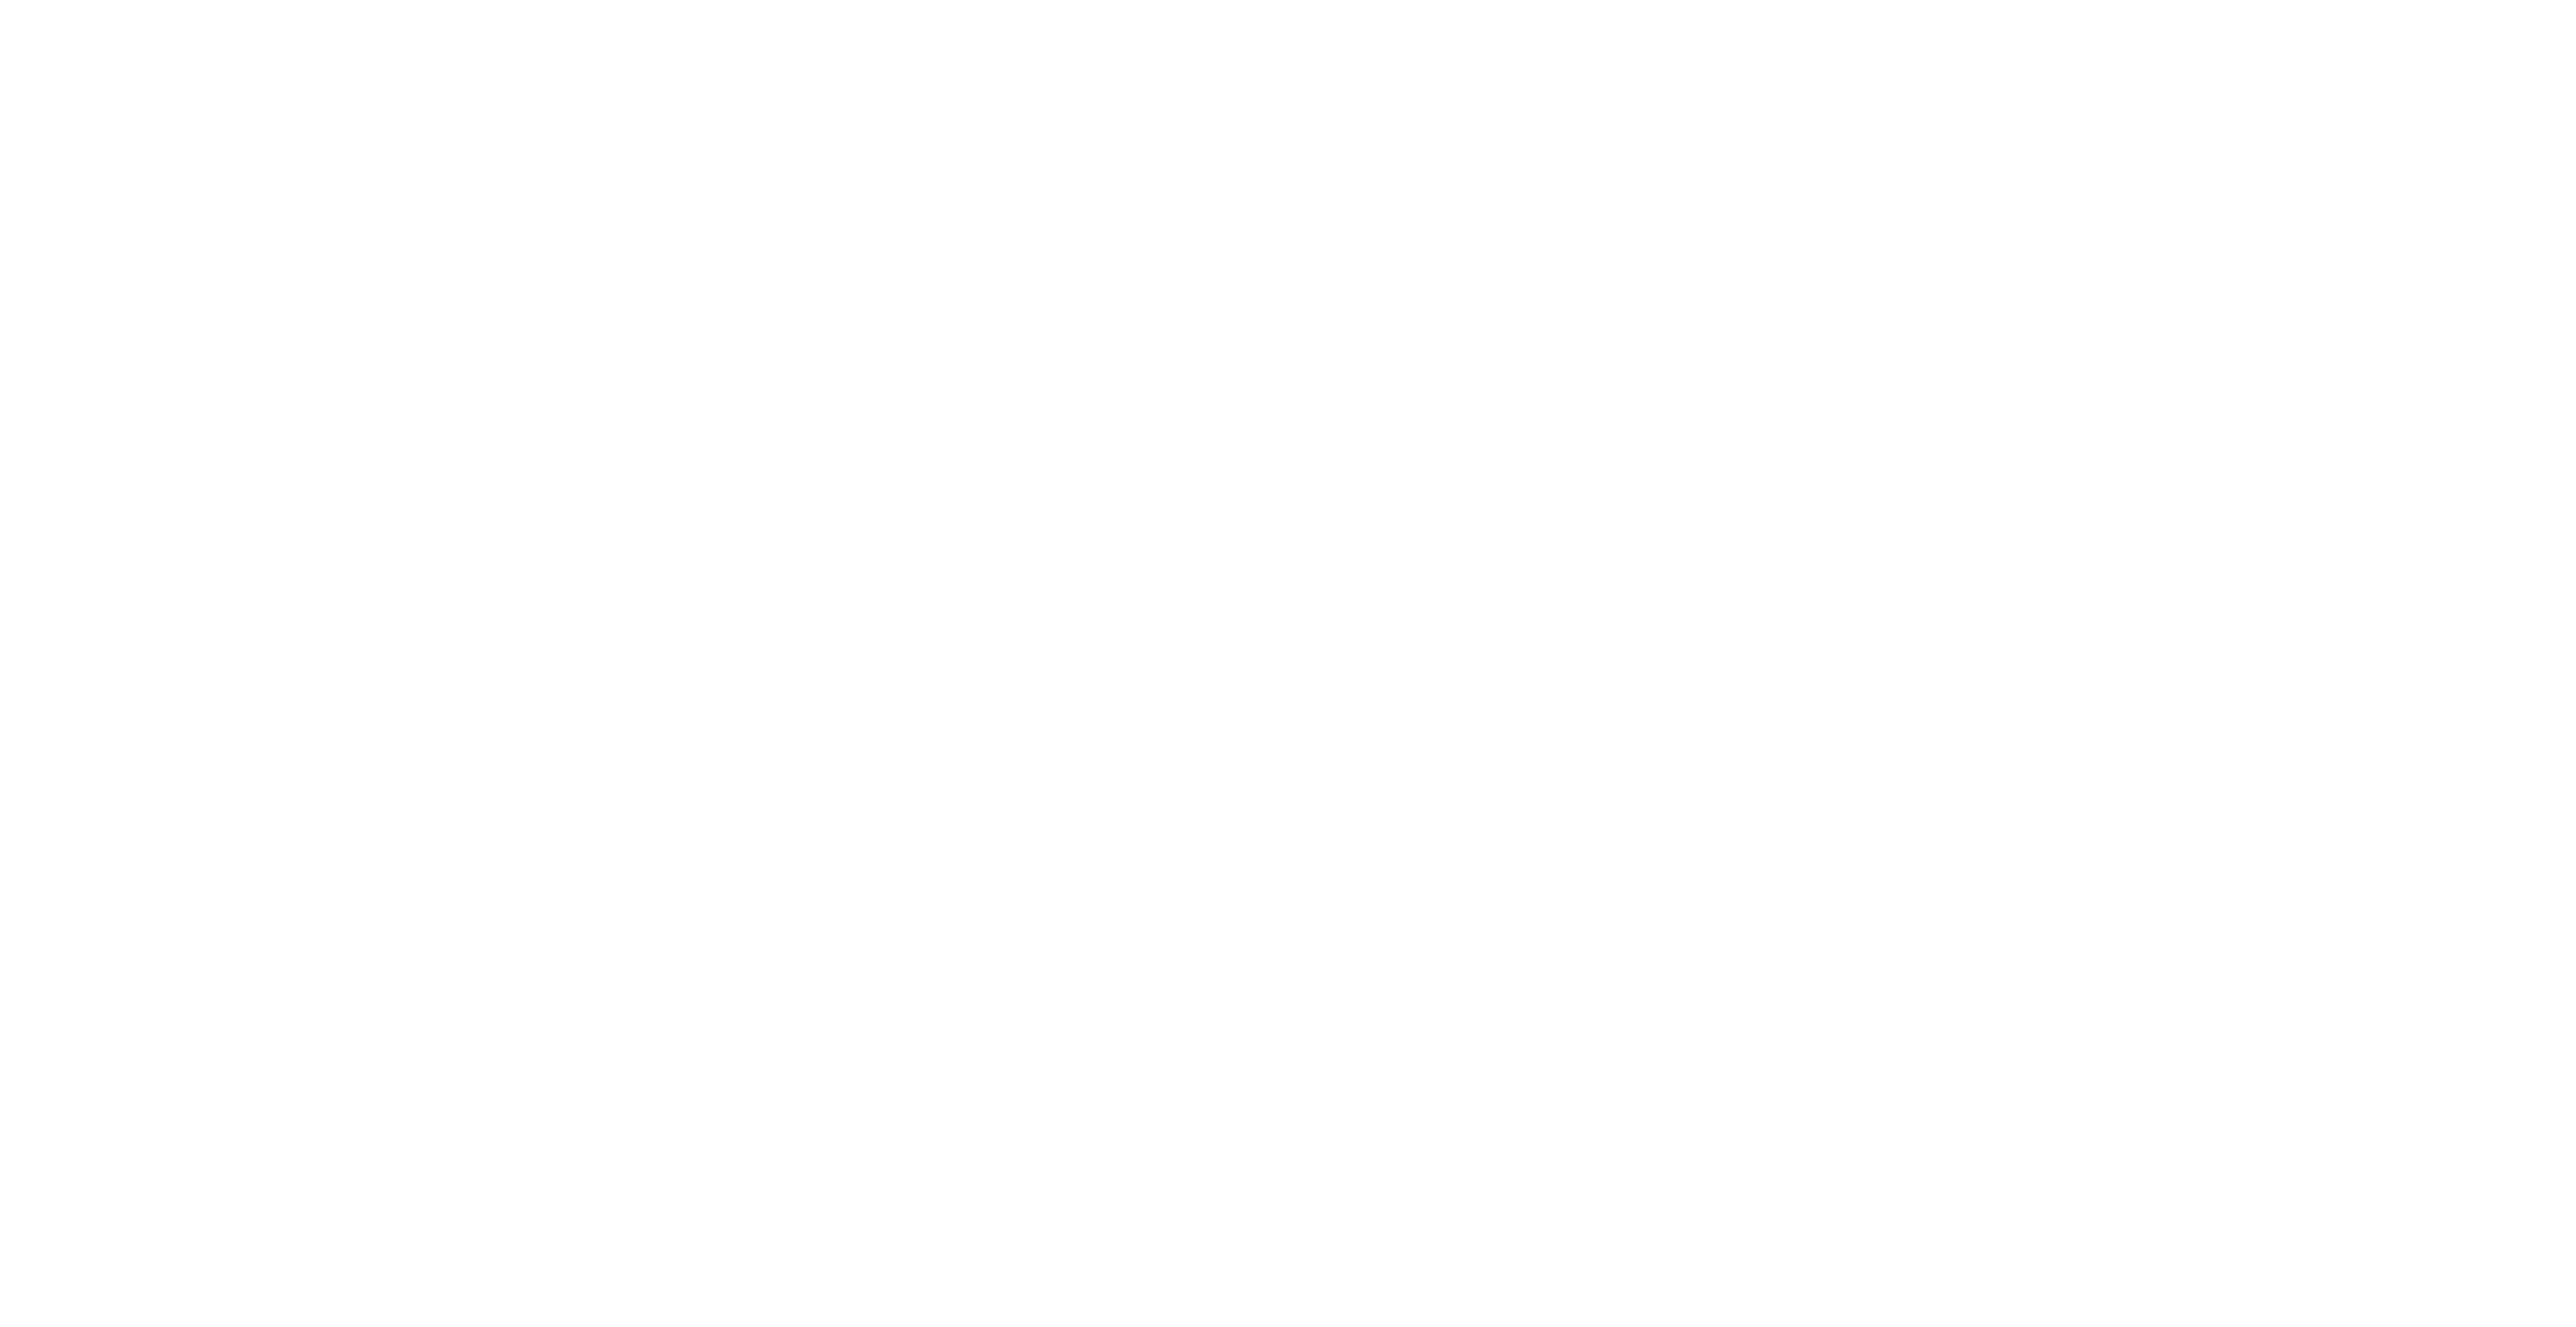 Digital Systems Engineering Inc.